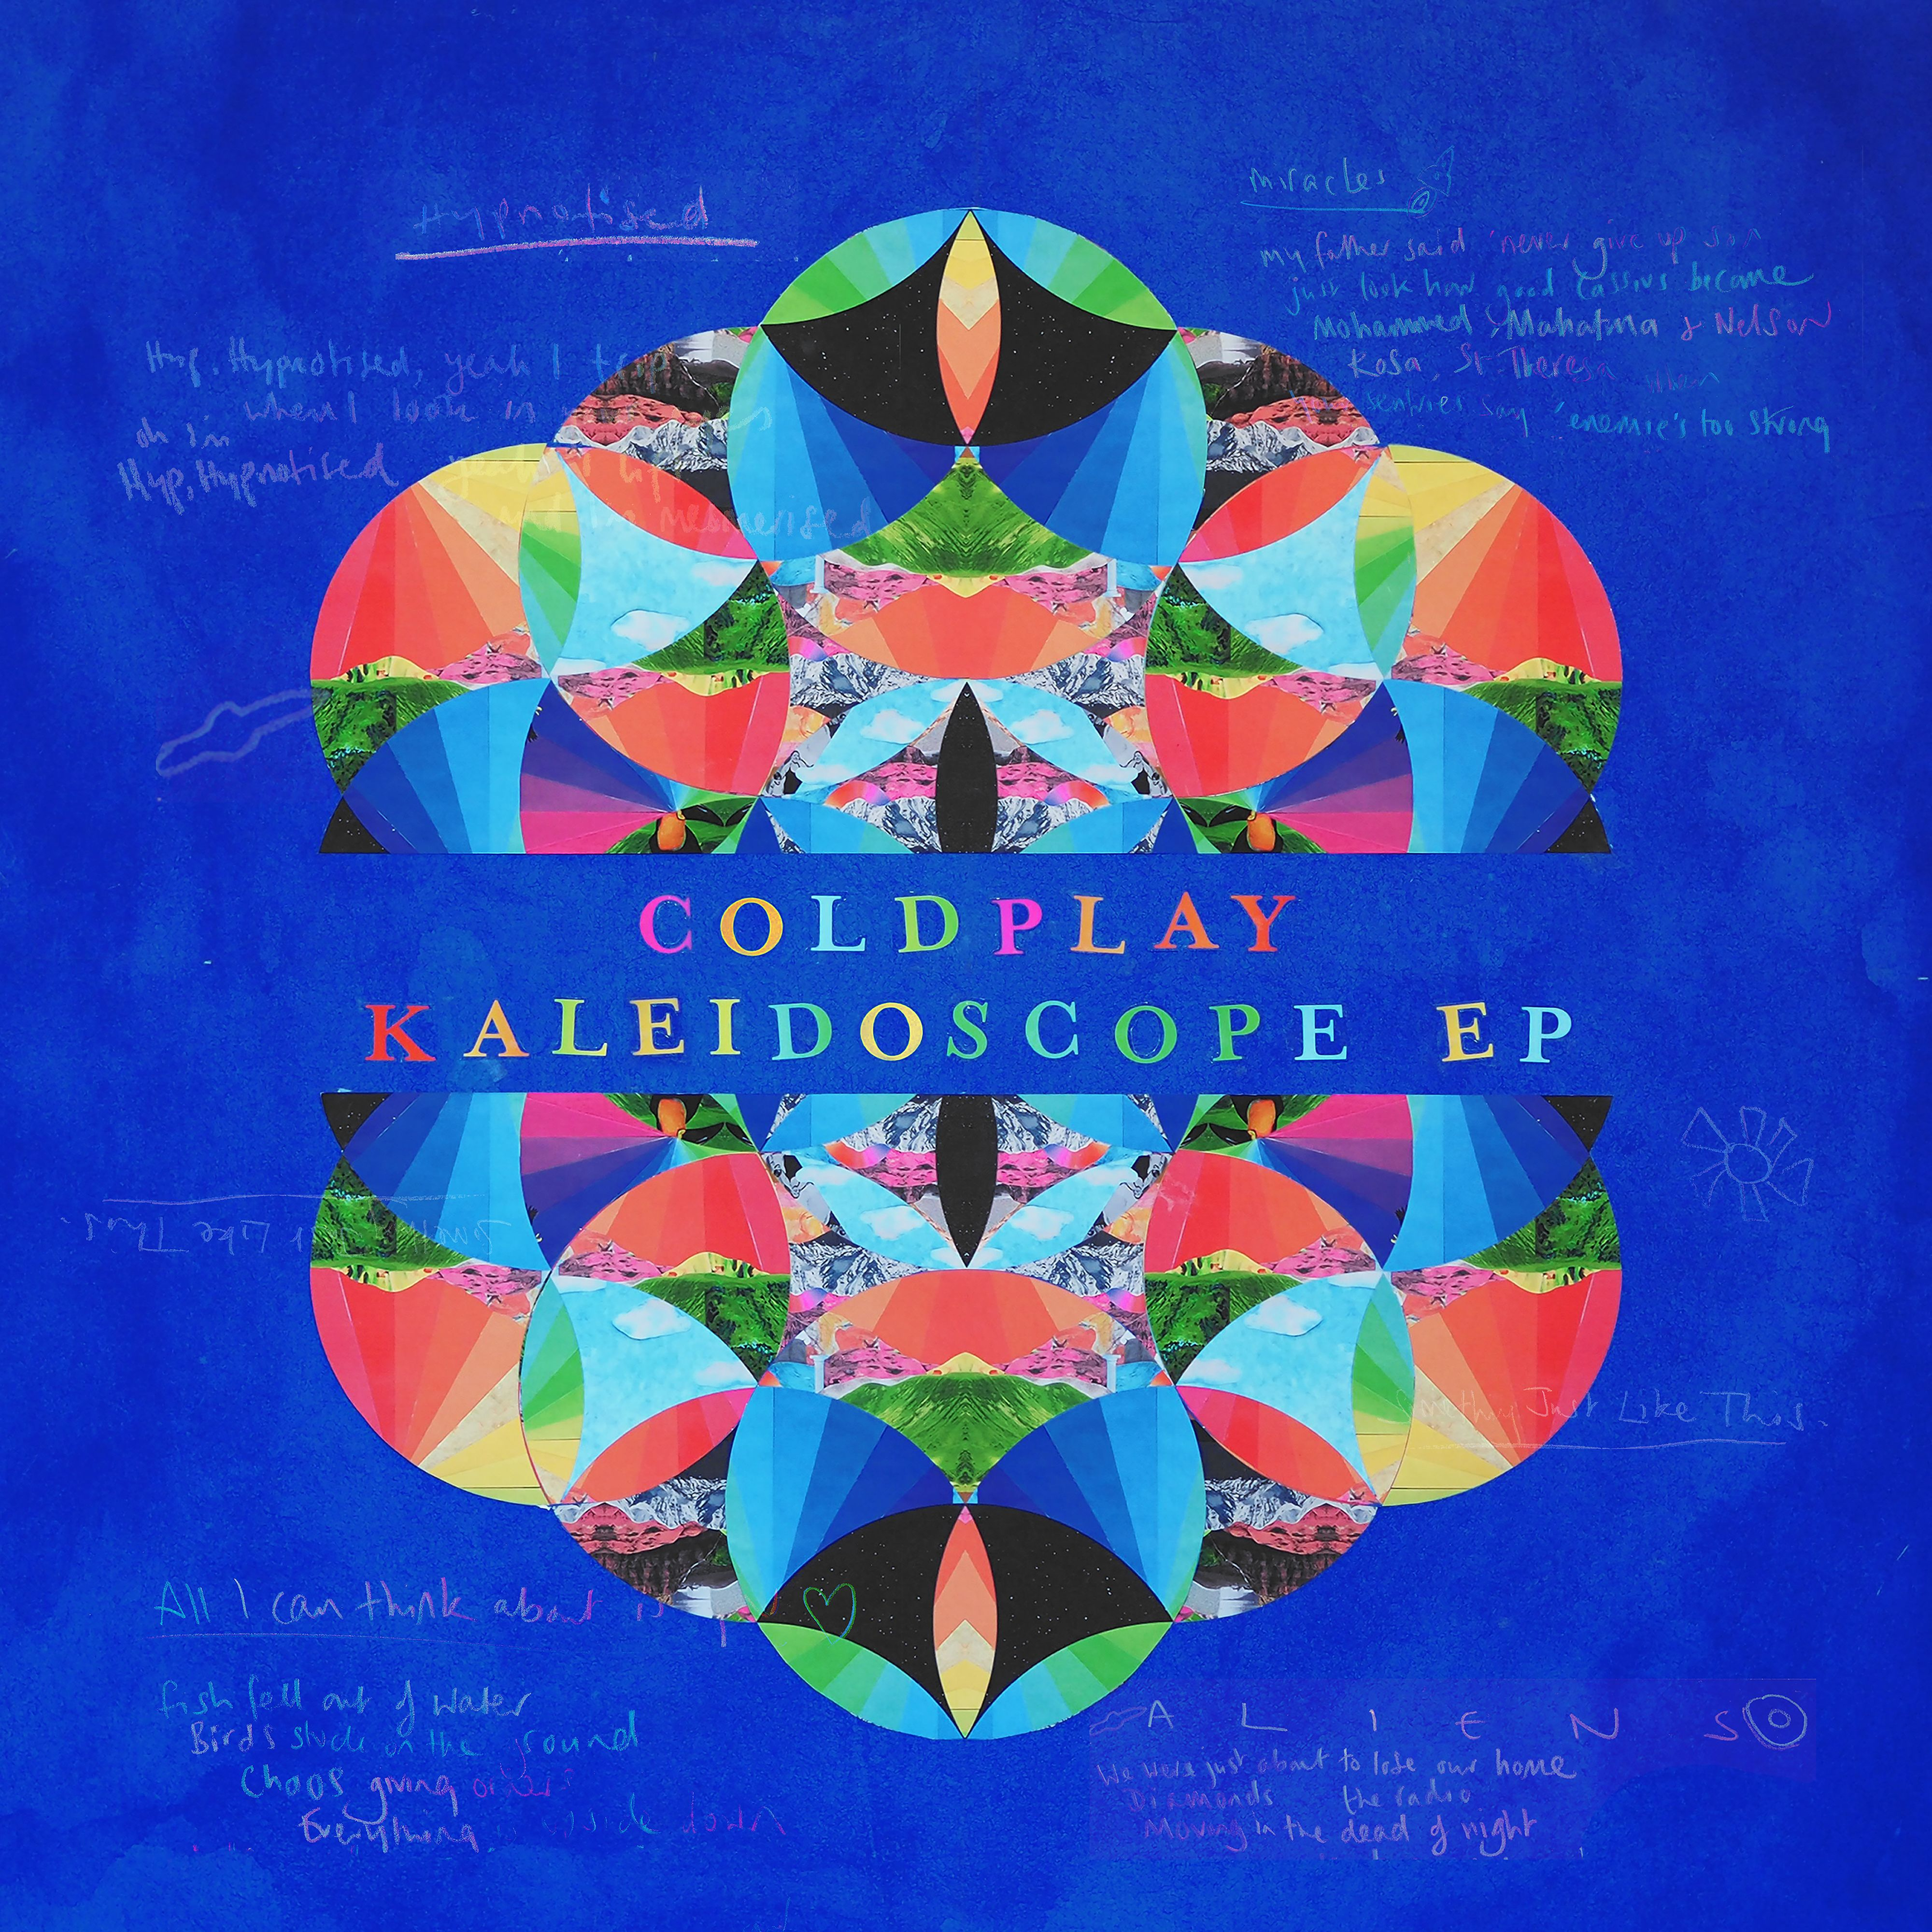 Coldplay - Kaleidoscope album cover